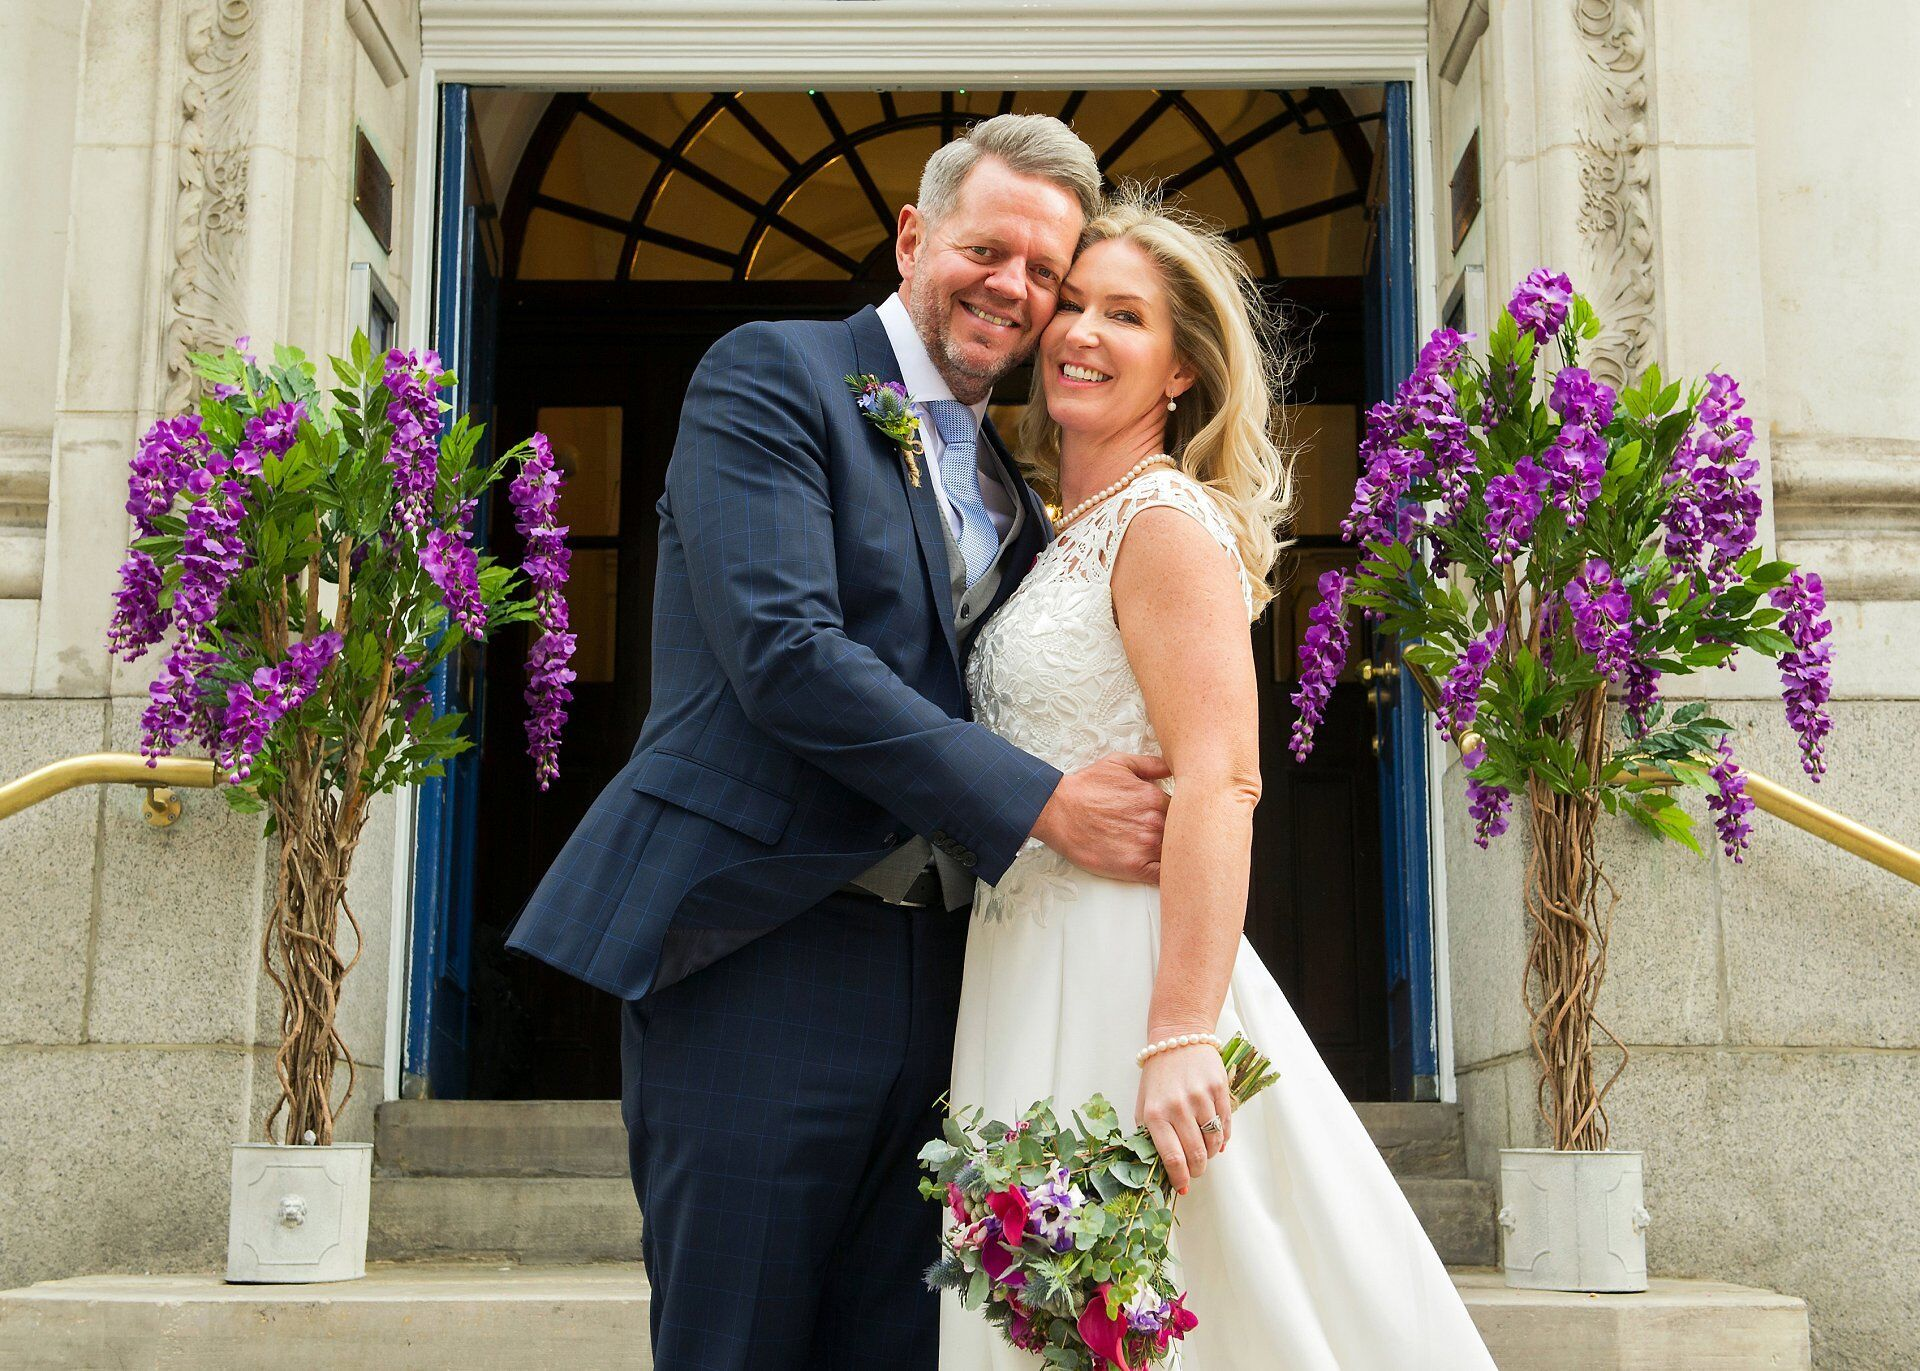 chelsea old town hall reopening in spring 2019 by experienced specialist chelsea register office wedding photographer emma duggan